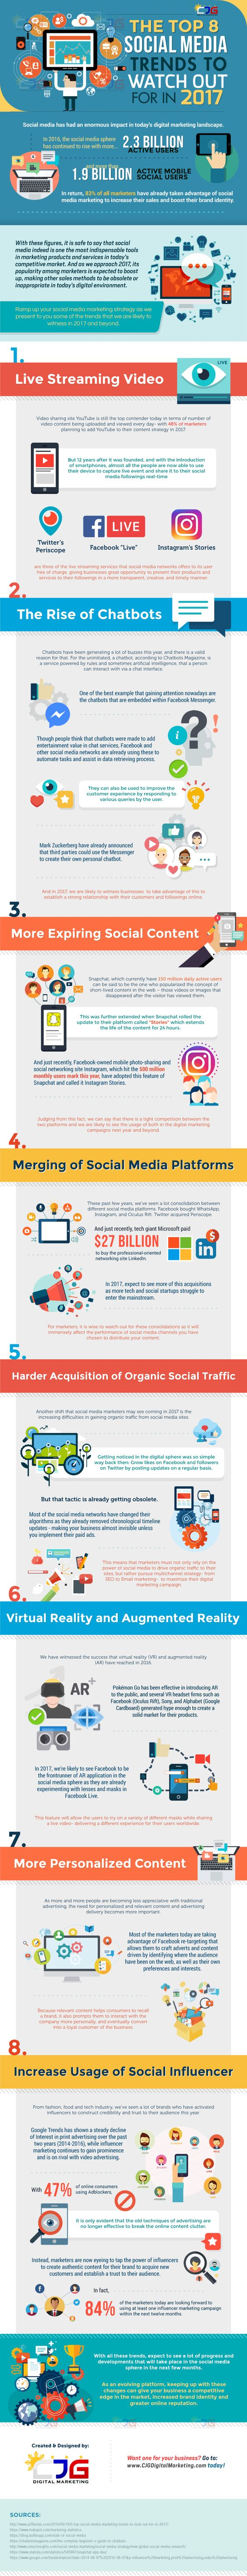 8 Social Media Trends To Know For 2017 Infographic